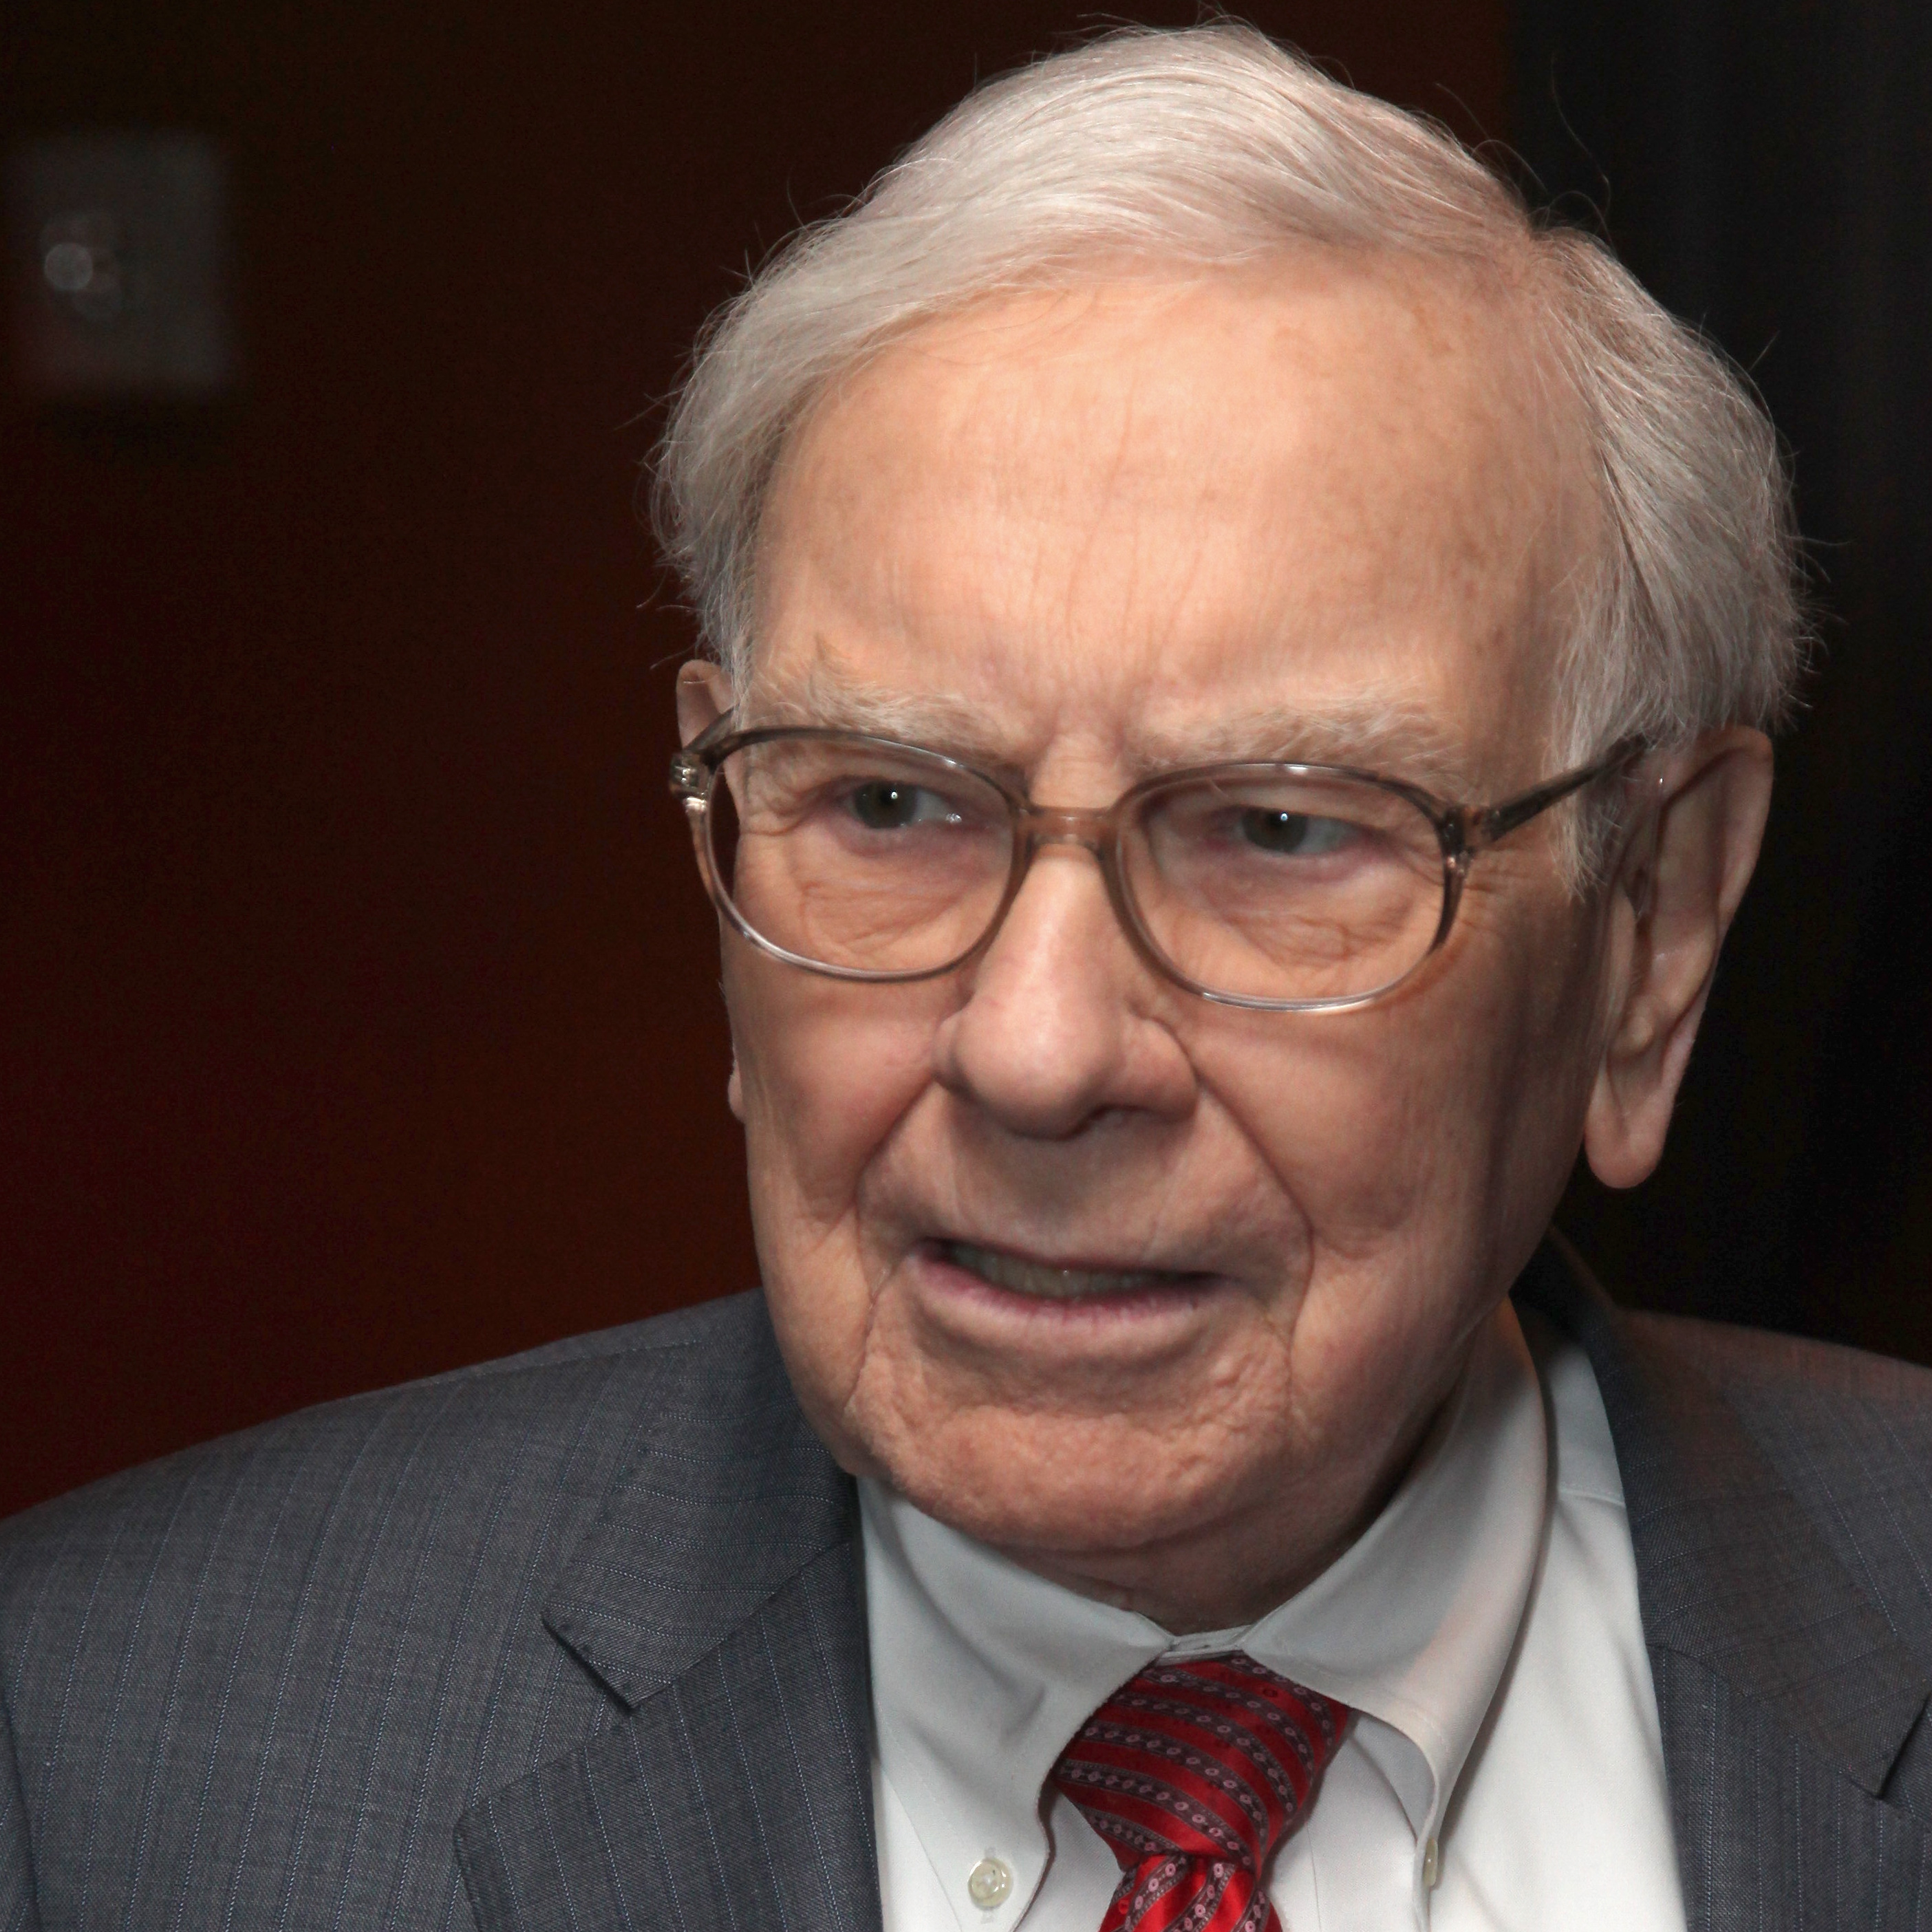 Berkshire Hathaway's Credit Rating Knocked Down A Notch